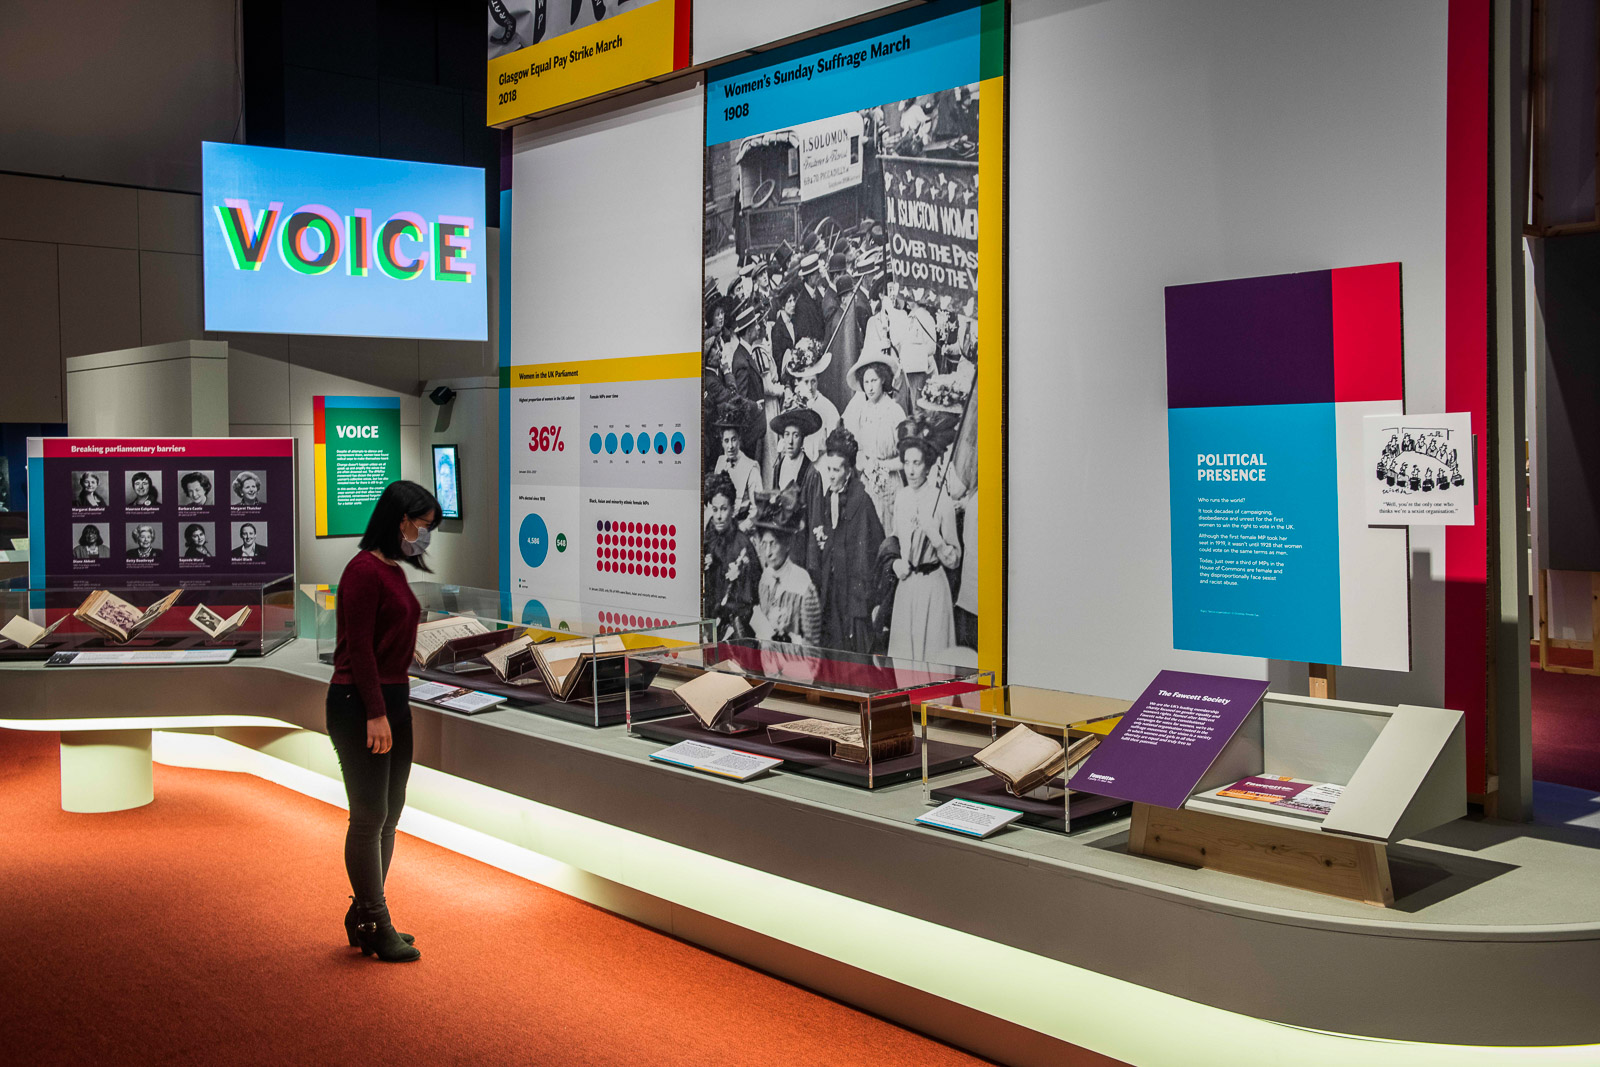 Images of socially distanced visitors at the Unfinished Business: the fight for women's rights and Hebrew Manuscripts: journeys of the written word exhibitions at British Library St Pancras